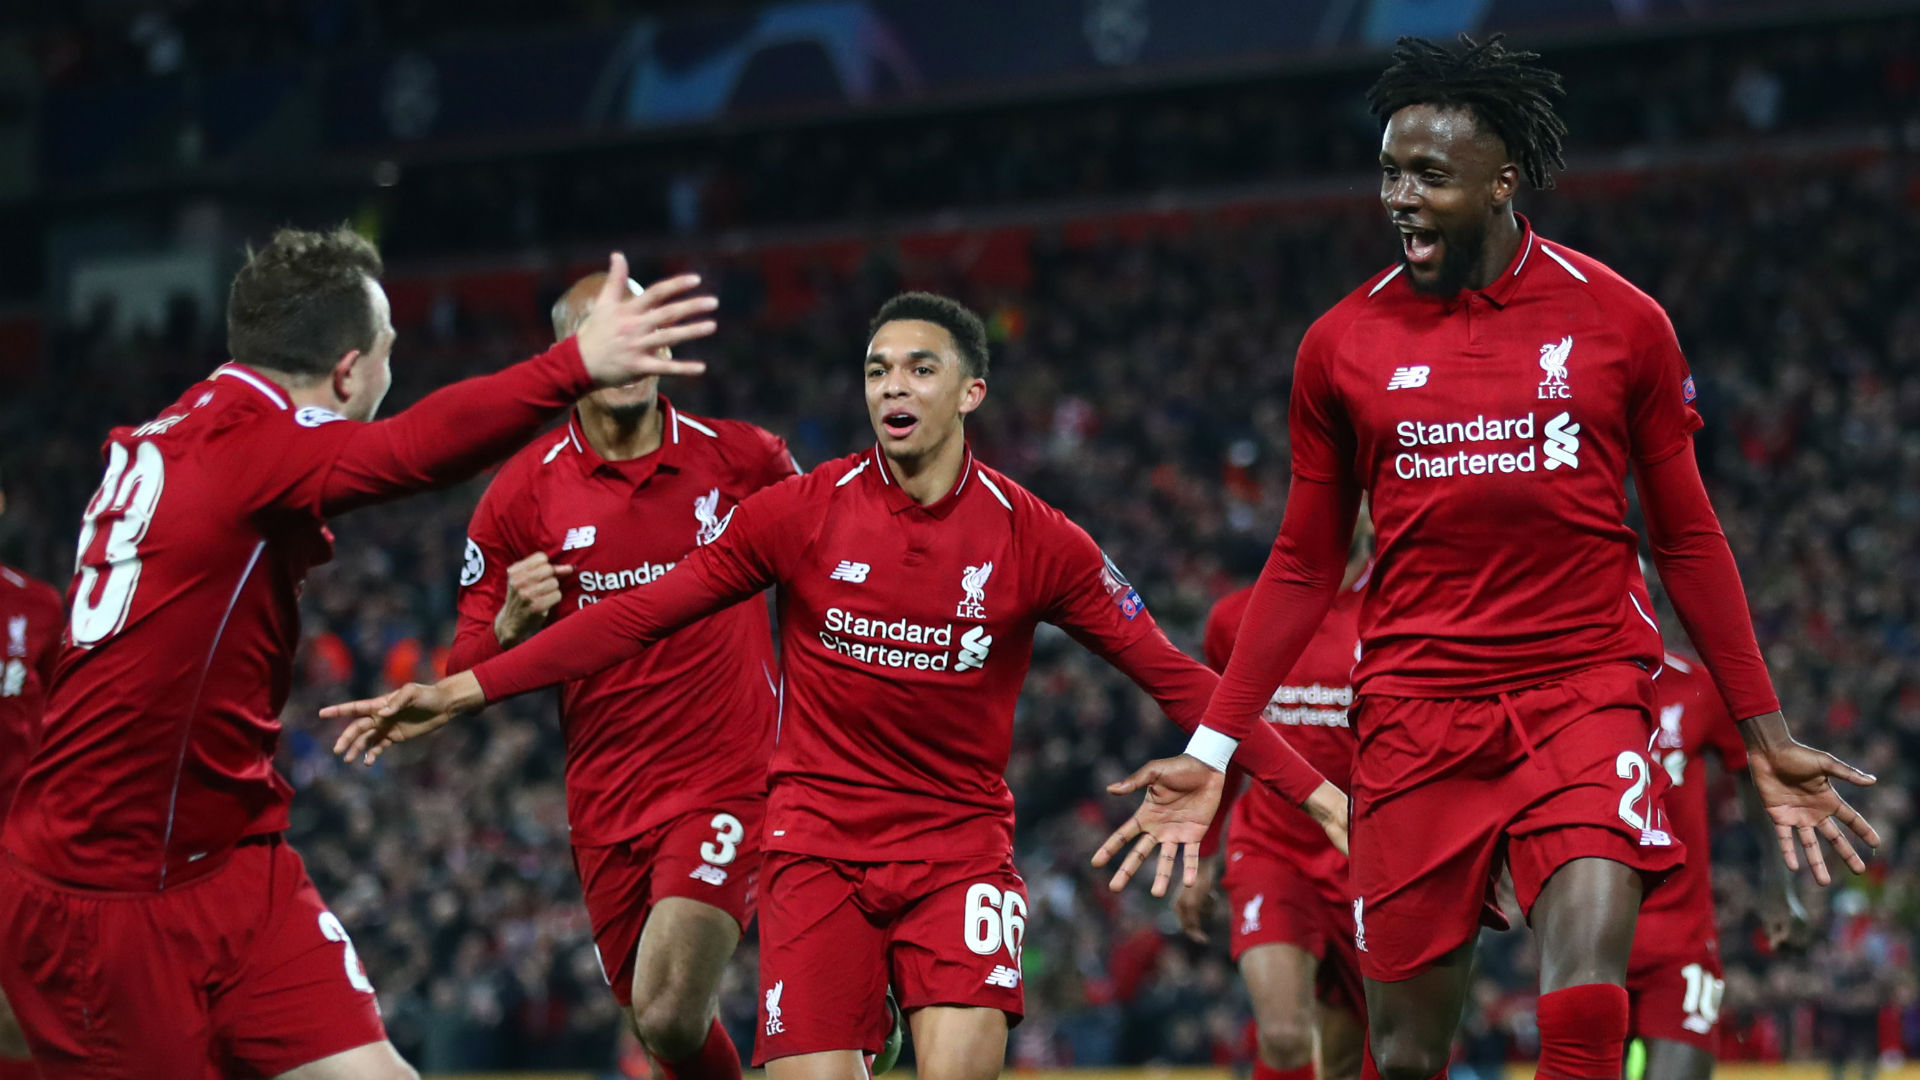 Liverpool vs. Barcelona results: Highlights from Liverpool's stunning comeback in Champions League semifinal